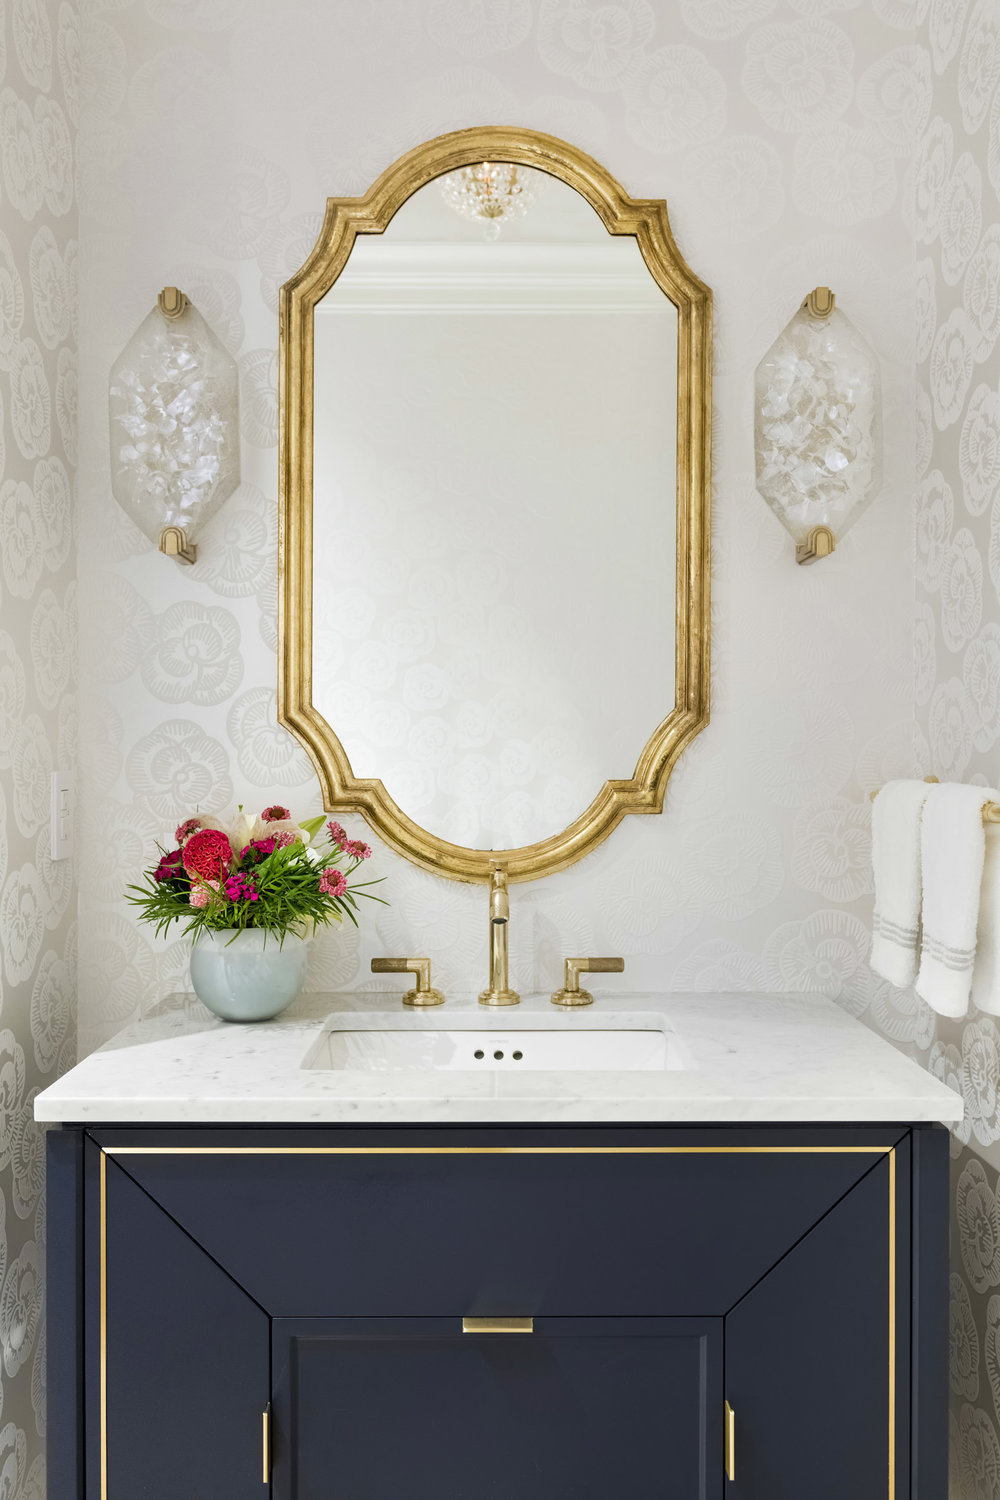 Brass Bathroom mirror via RLH Studio